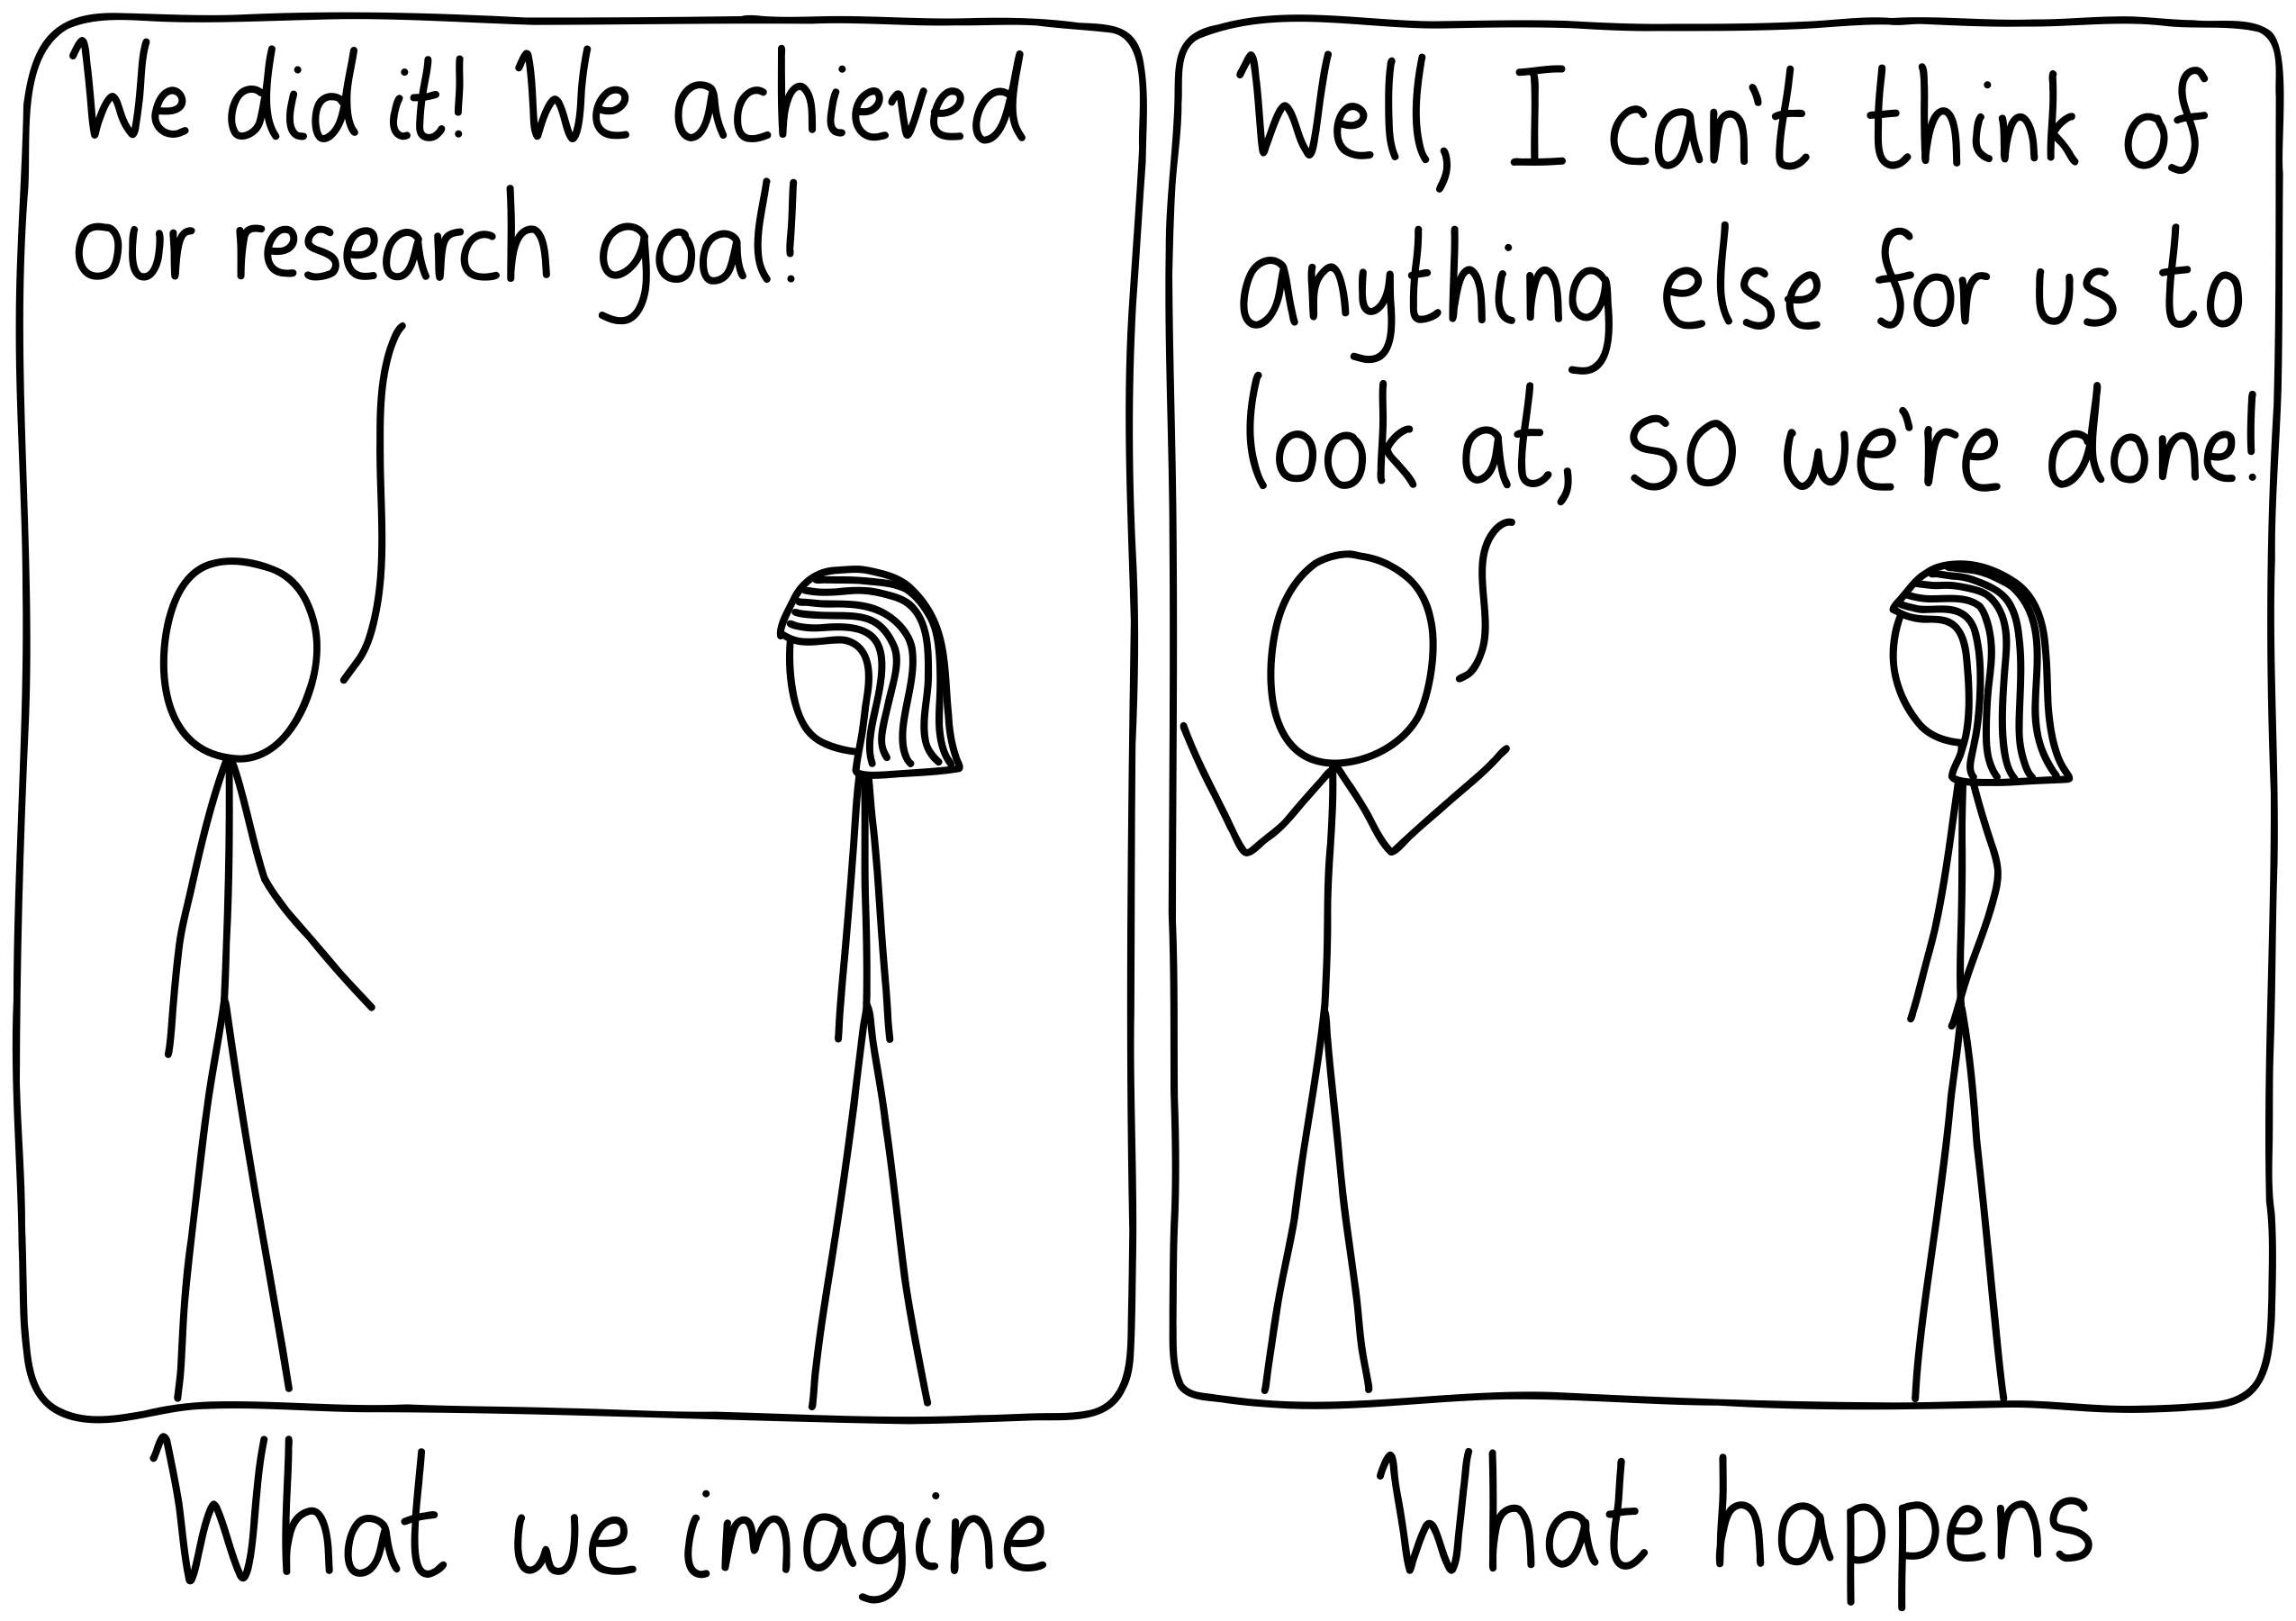 """Left panel (Caption: What we imagine): First researcher to the other one: """"We did it! We achieved our research goal!"""" Right panel (Caption: What happens): First researcher to the other one: """"Well, I can't think of anything else for us to look at, so we're done!"""""""